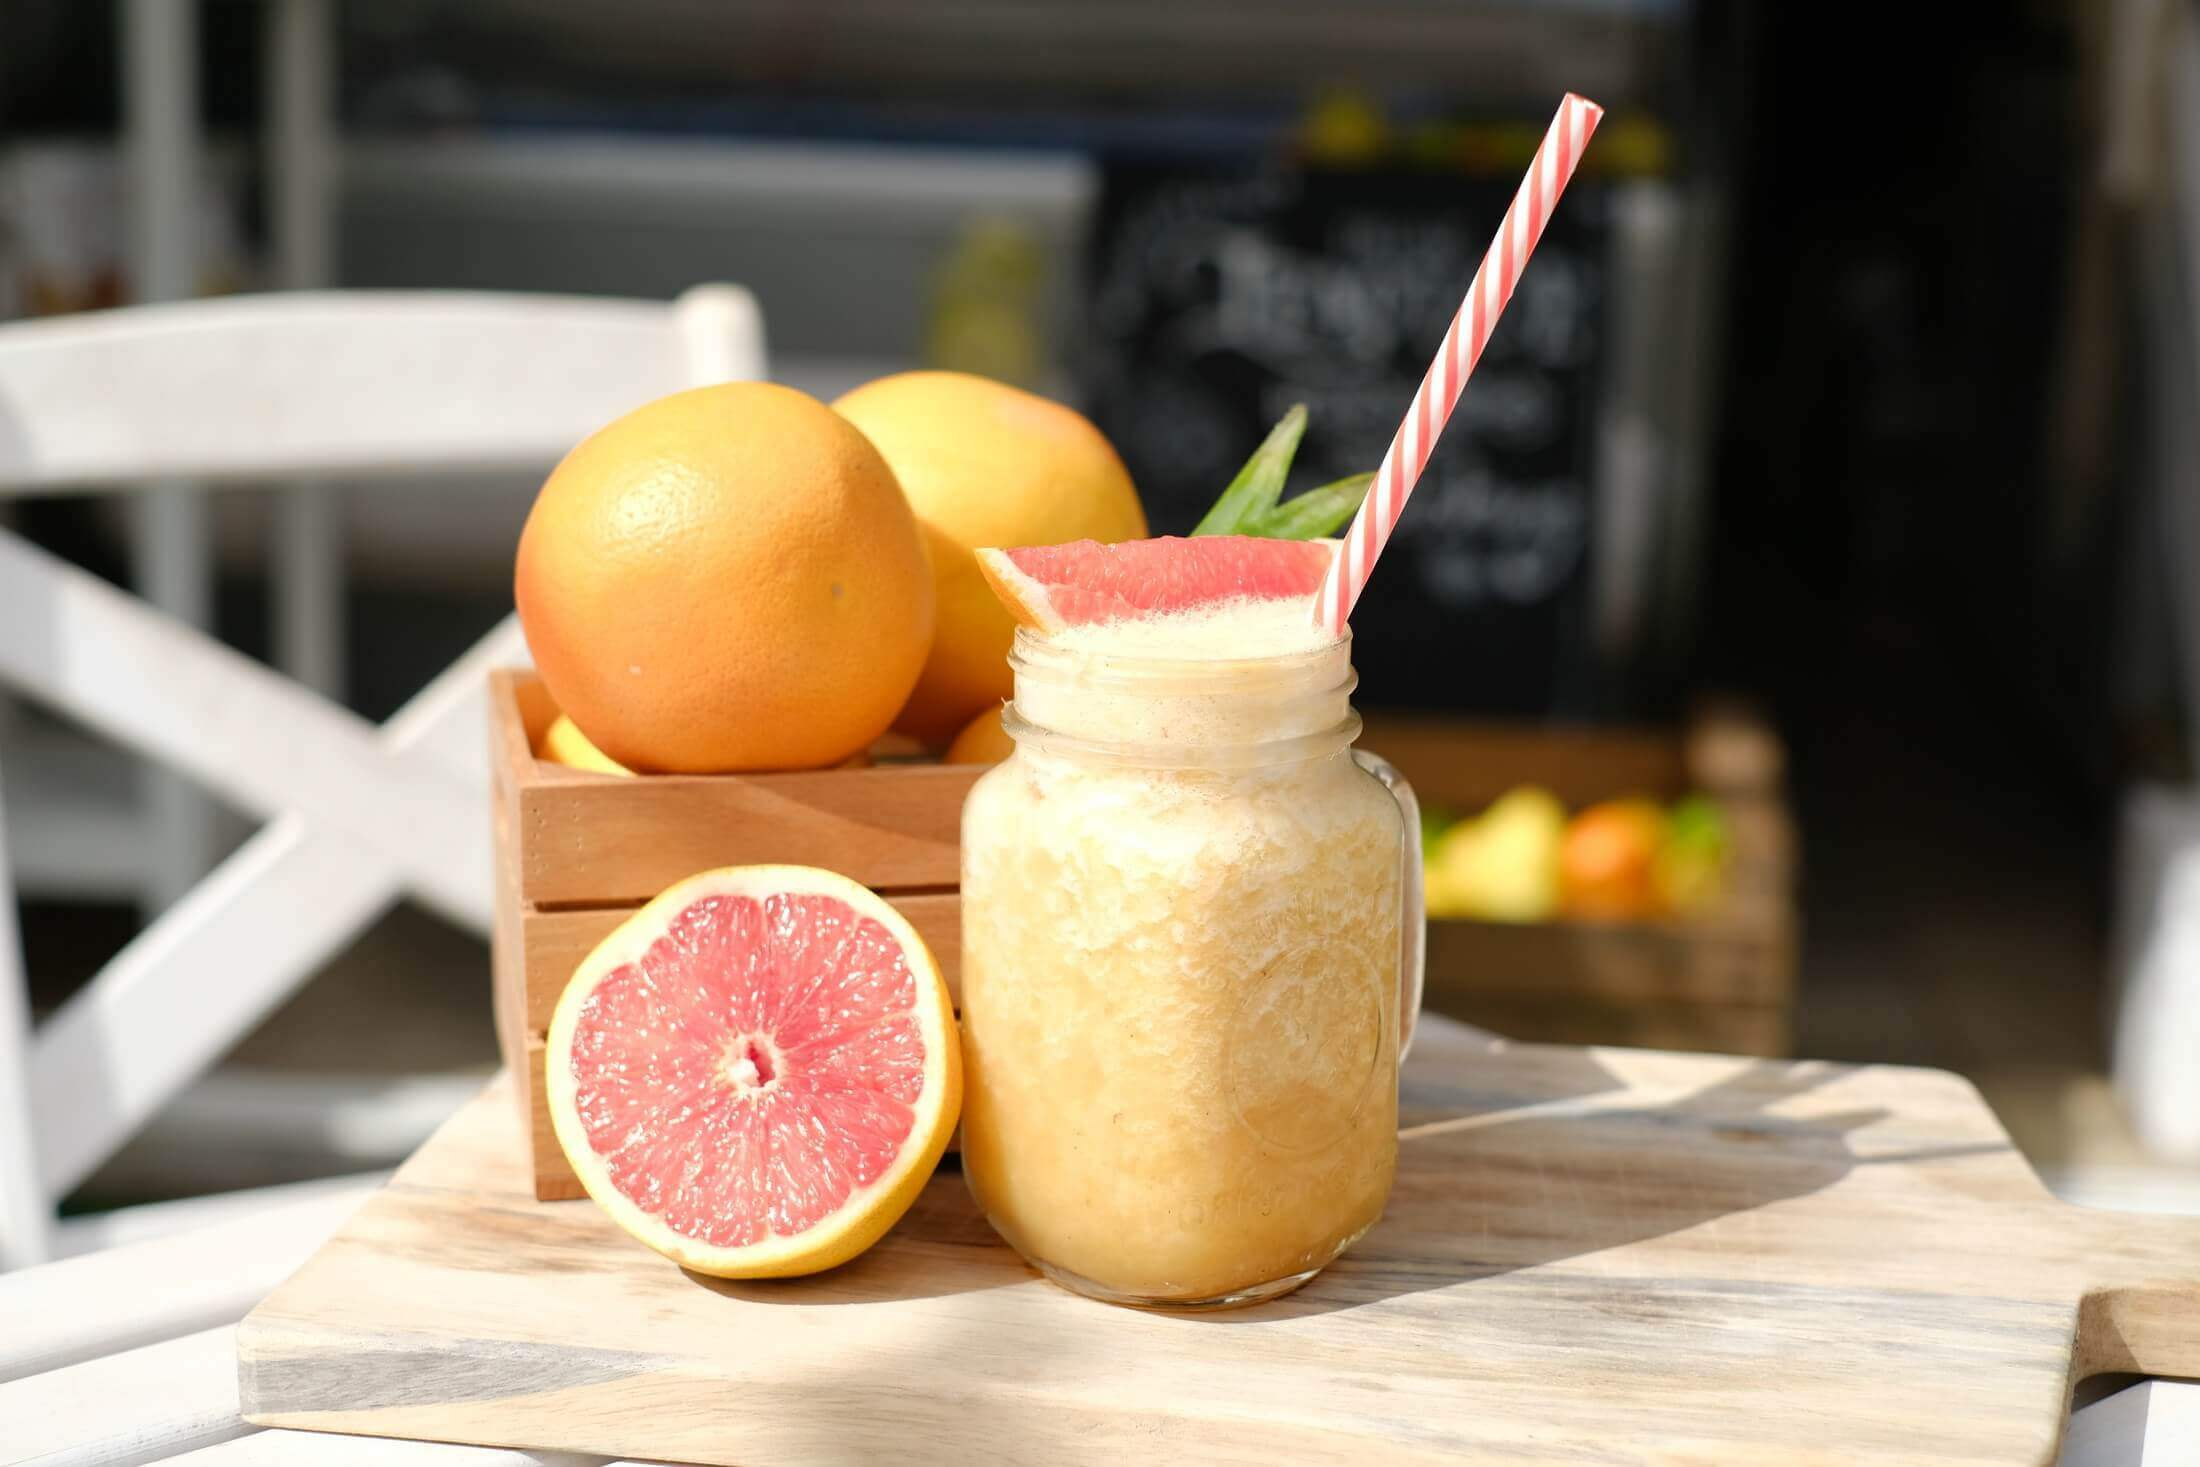 grapefruit-juice-homemade-ronis-deli-superfood